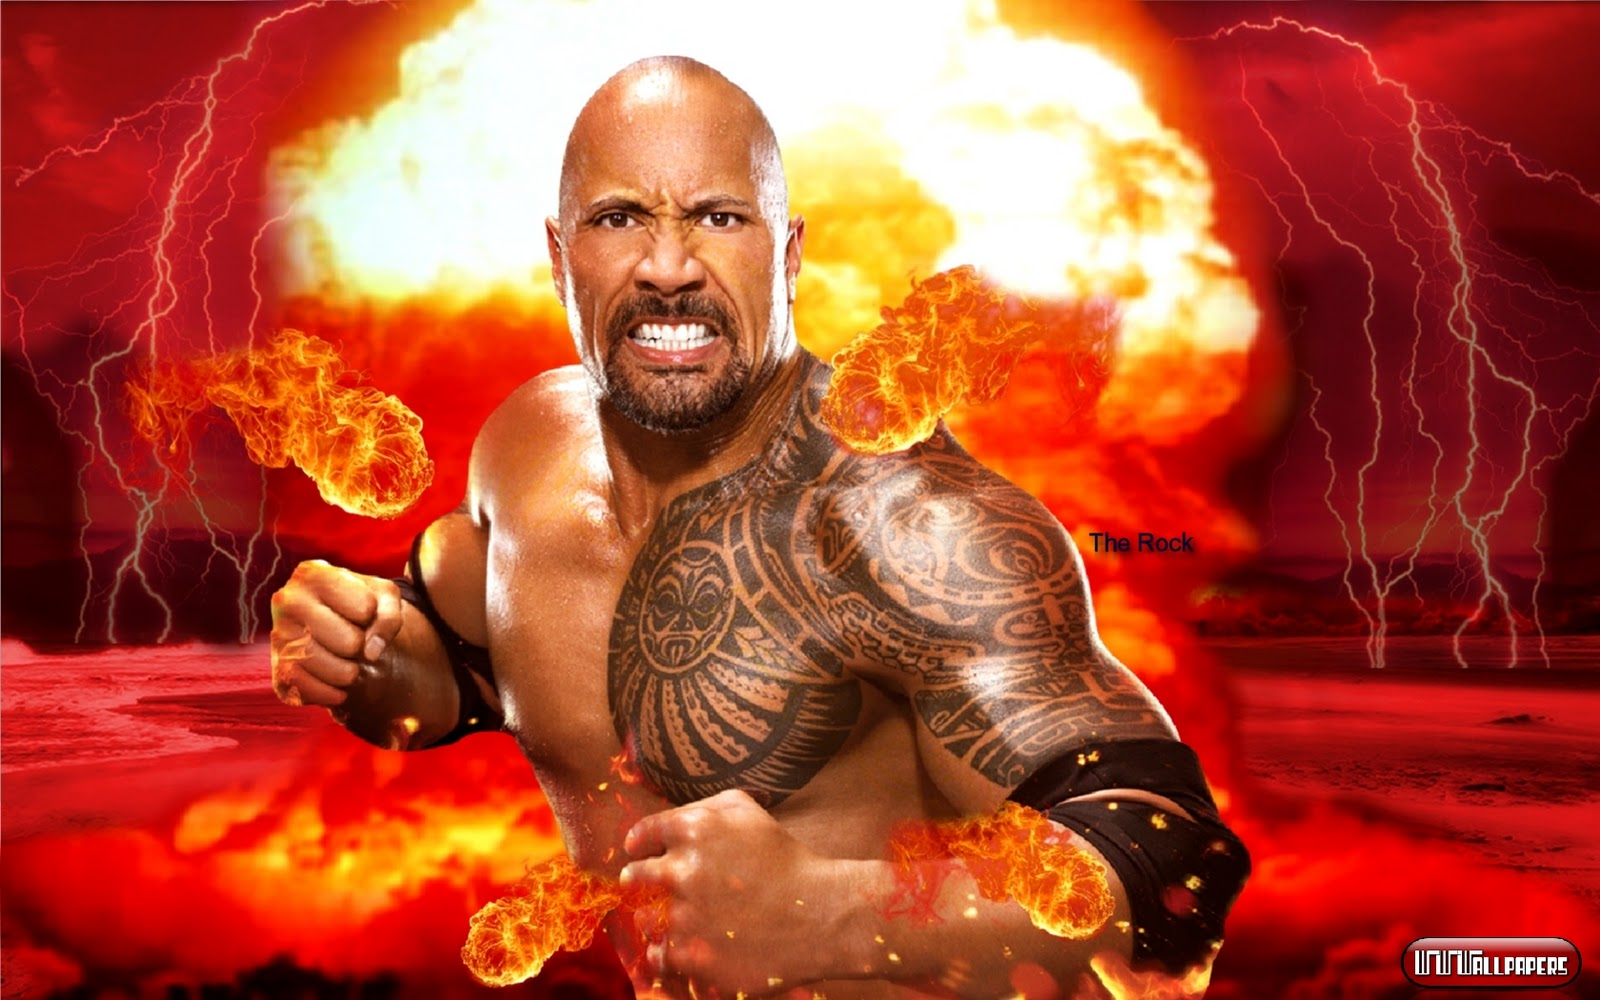 All About Wrestling Stars The Rock Wallpapers The Rock